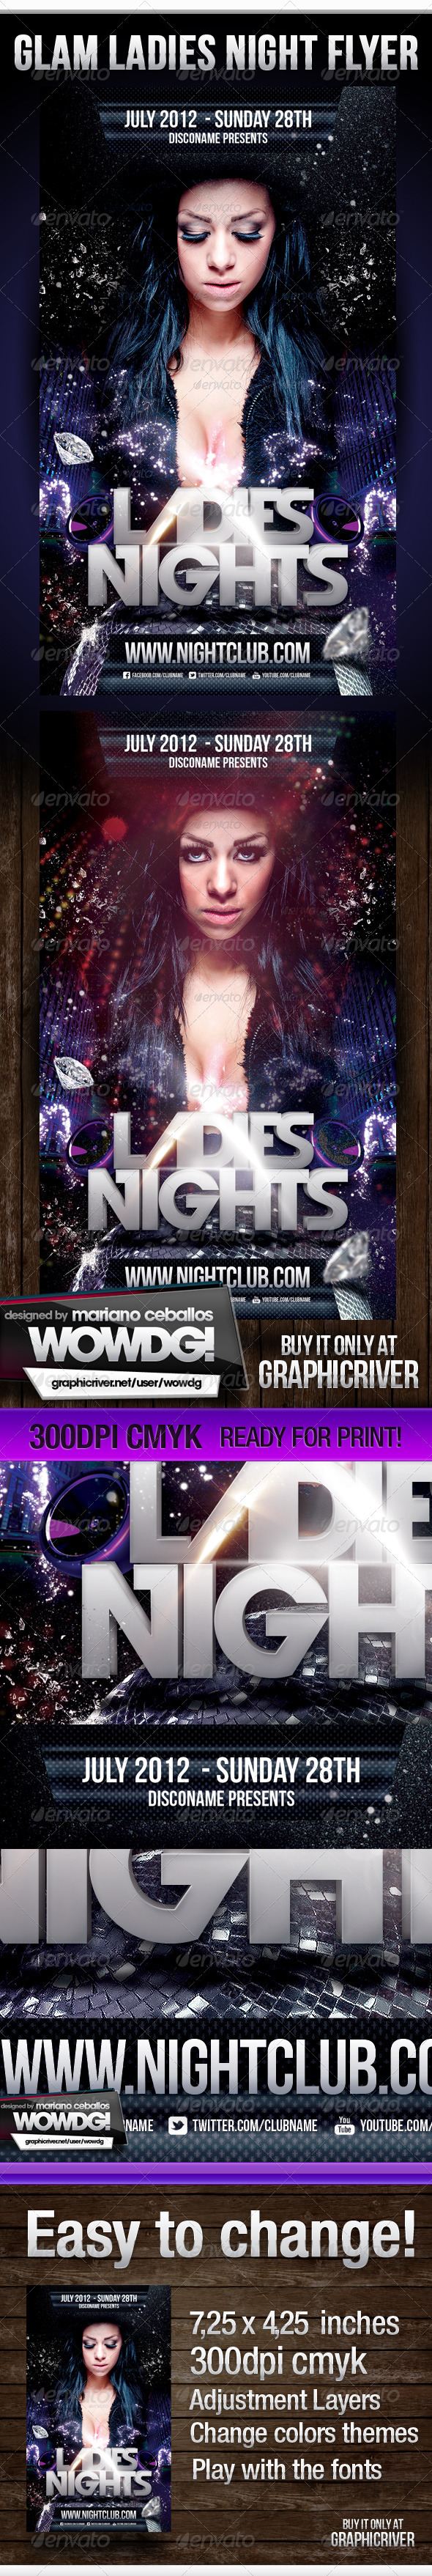 Ladies Night Party Flyer V2 - Clubs & Parties Events